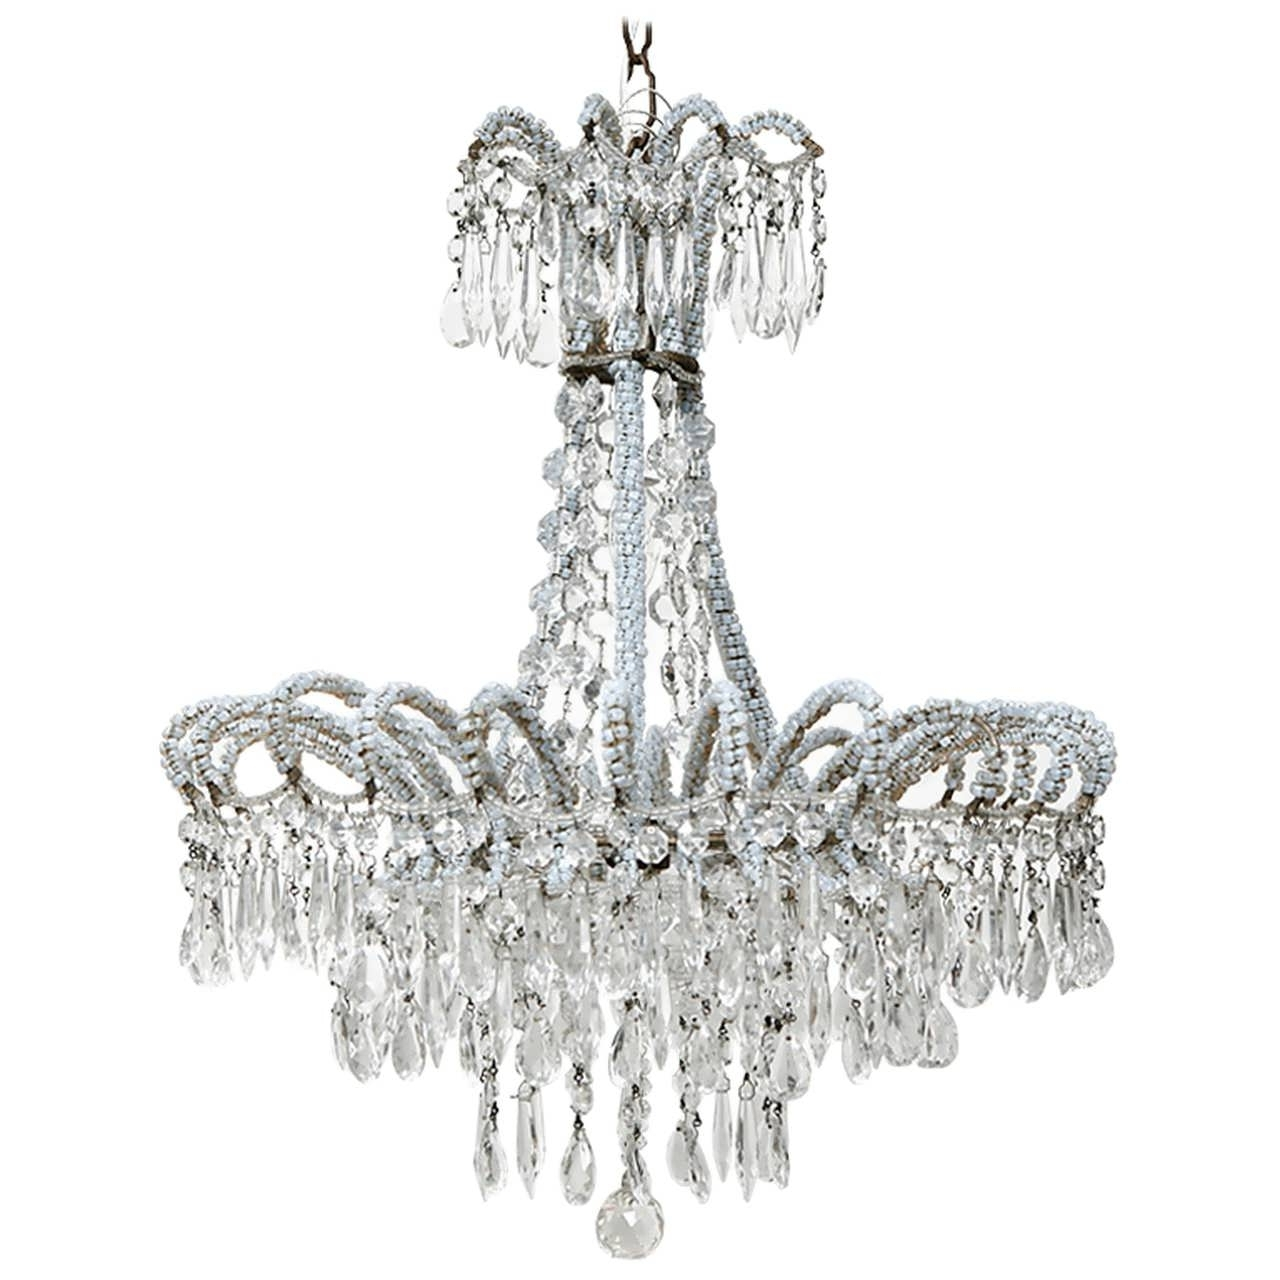 Chandelier : Orb Chandelier Candle Chandelier Italian Chandelier Regarding Current Italian Chandeliers Style (View 1 of 20)